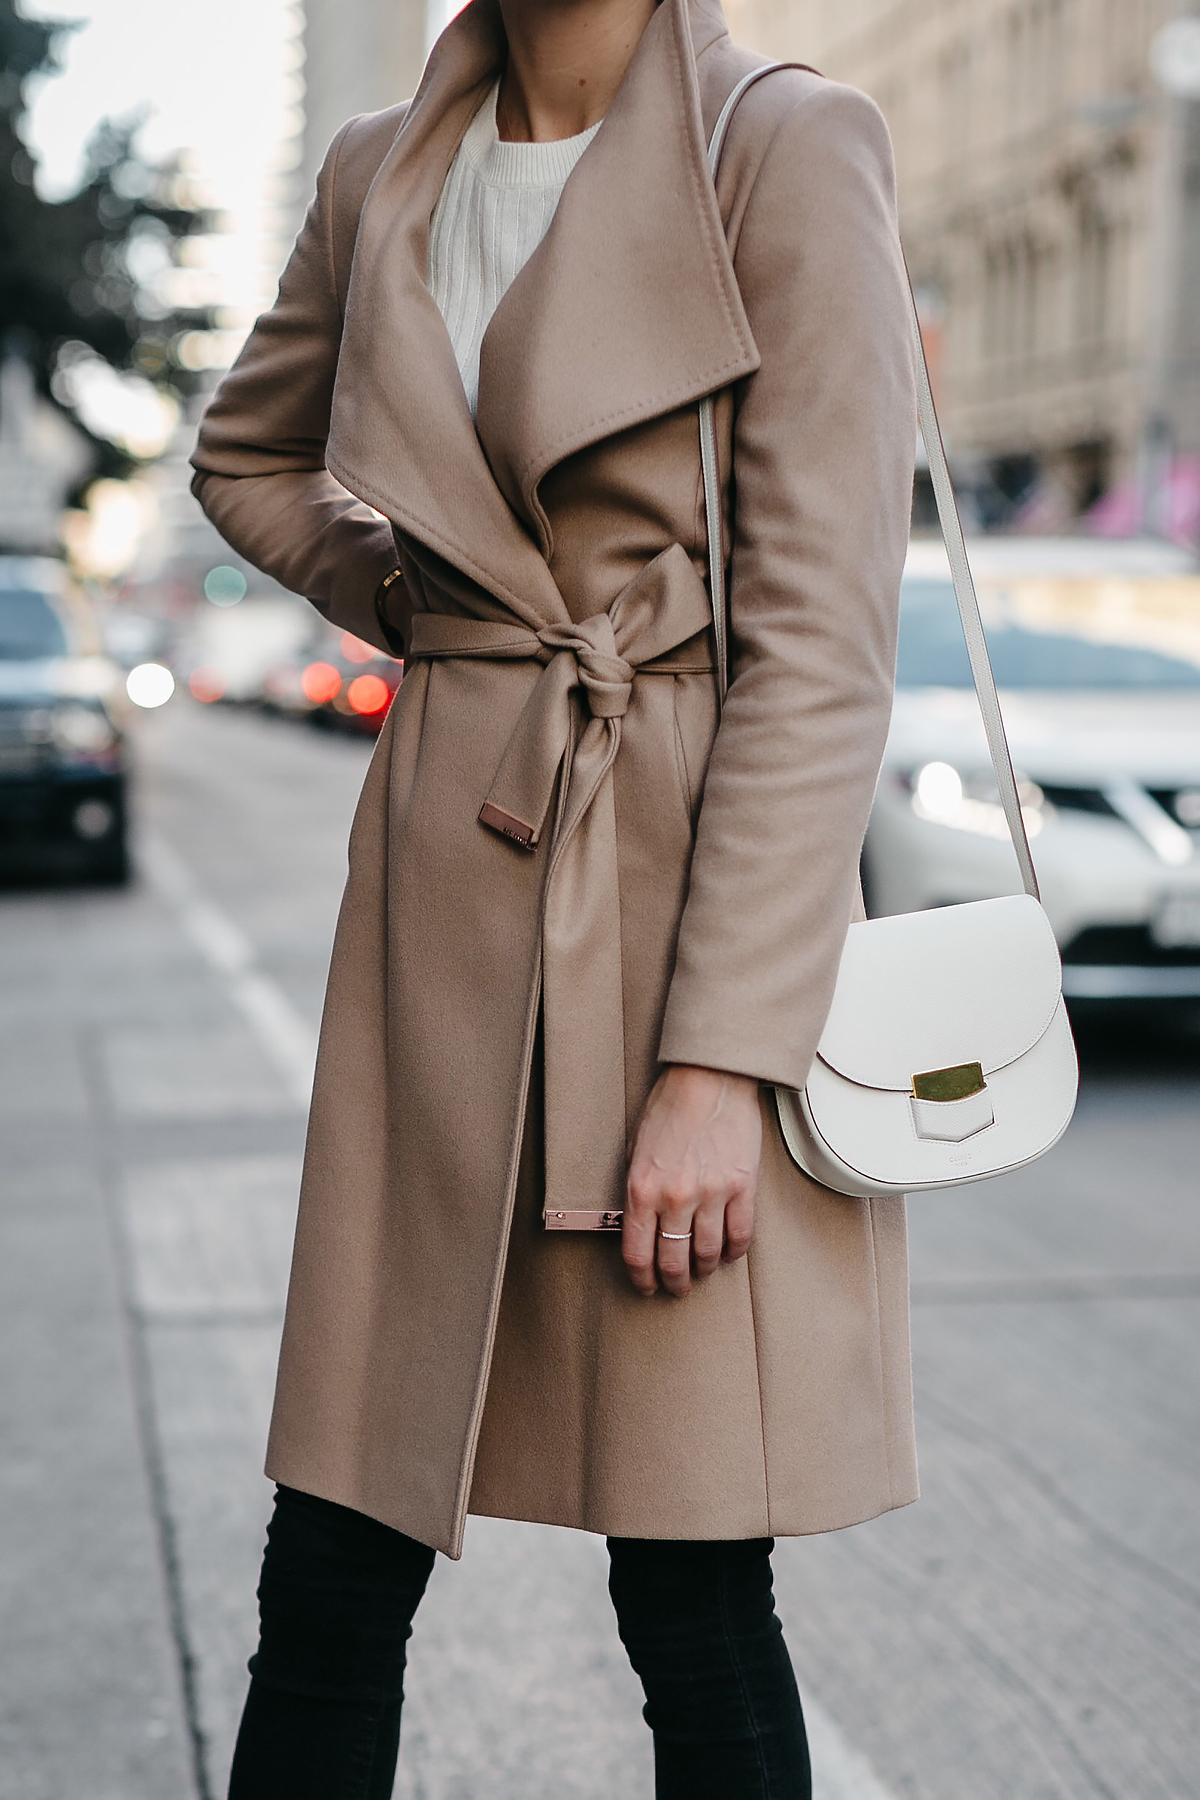 Tan Wrap Coat White Sweater Celine White Trotteur Handbag Black Skinny Jeans Fashion Jackson Dallas Blogger Fashion Blogger Street Style